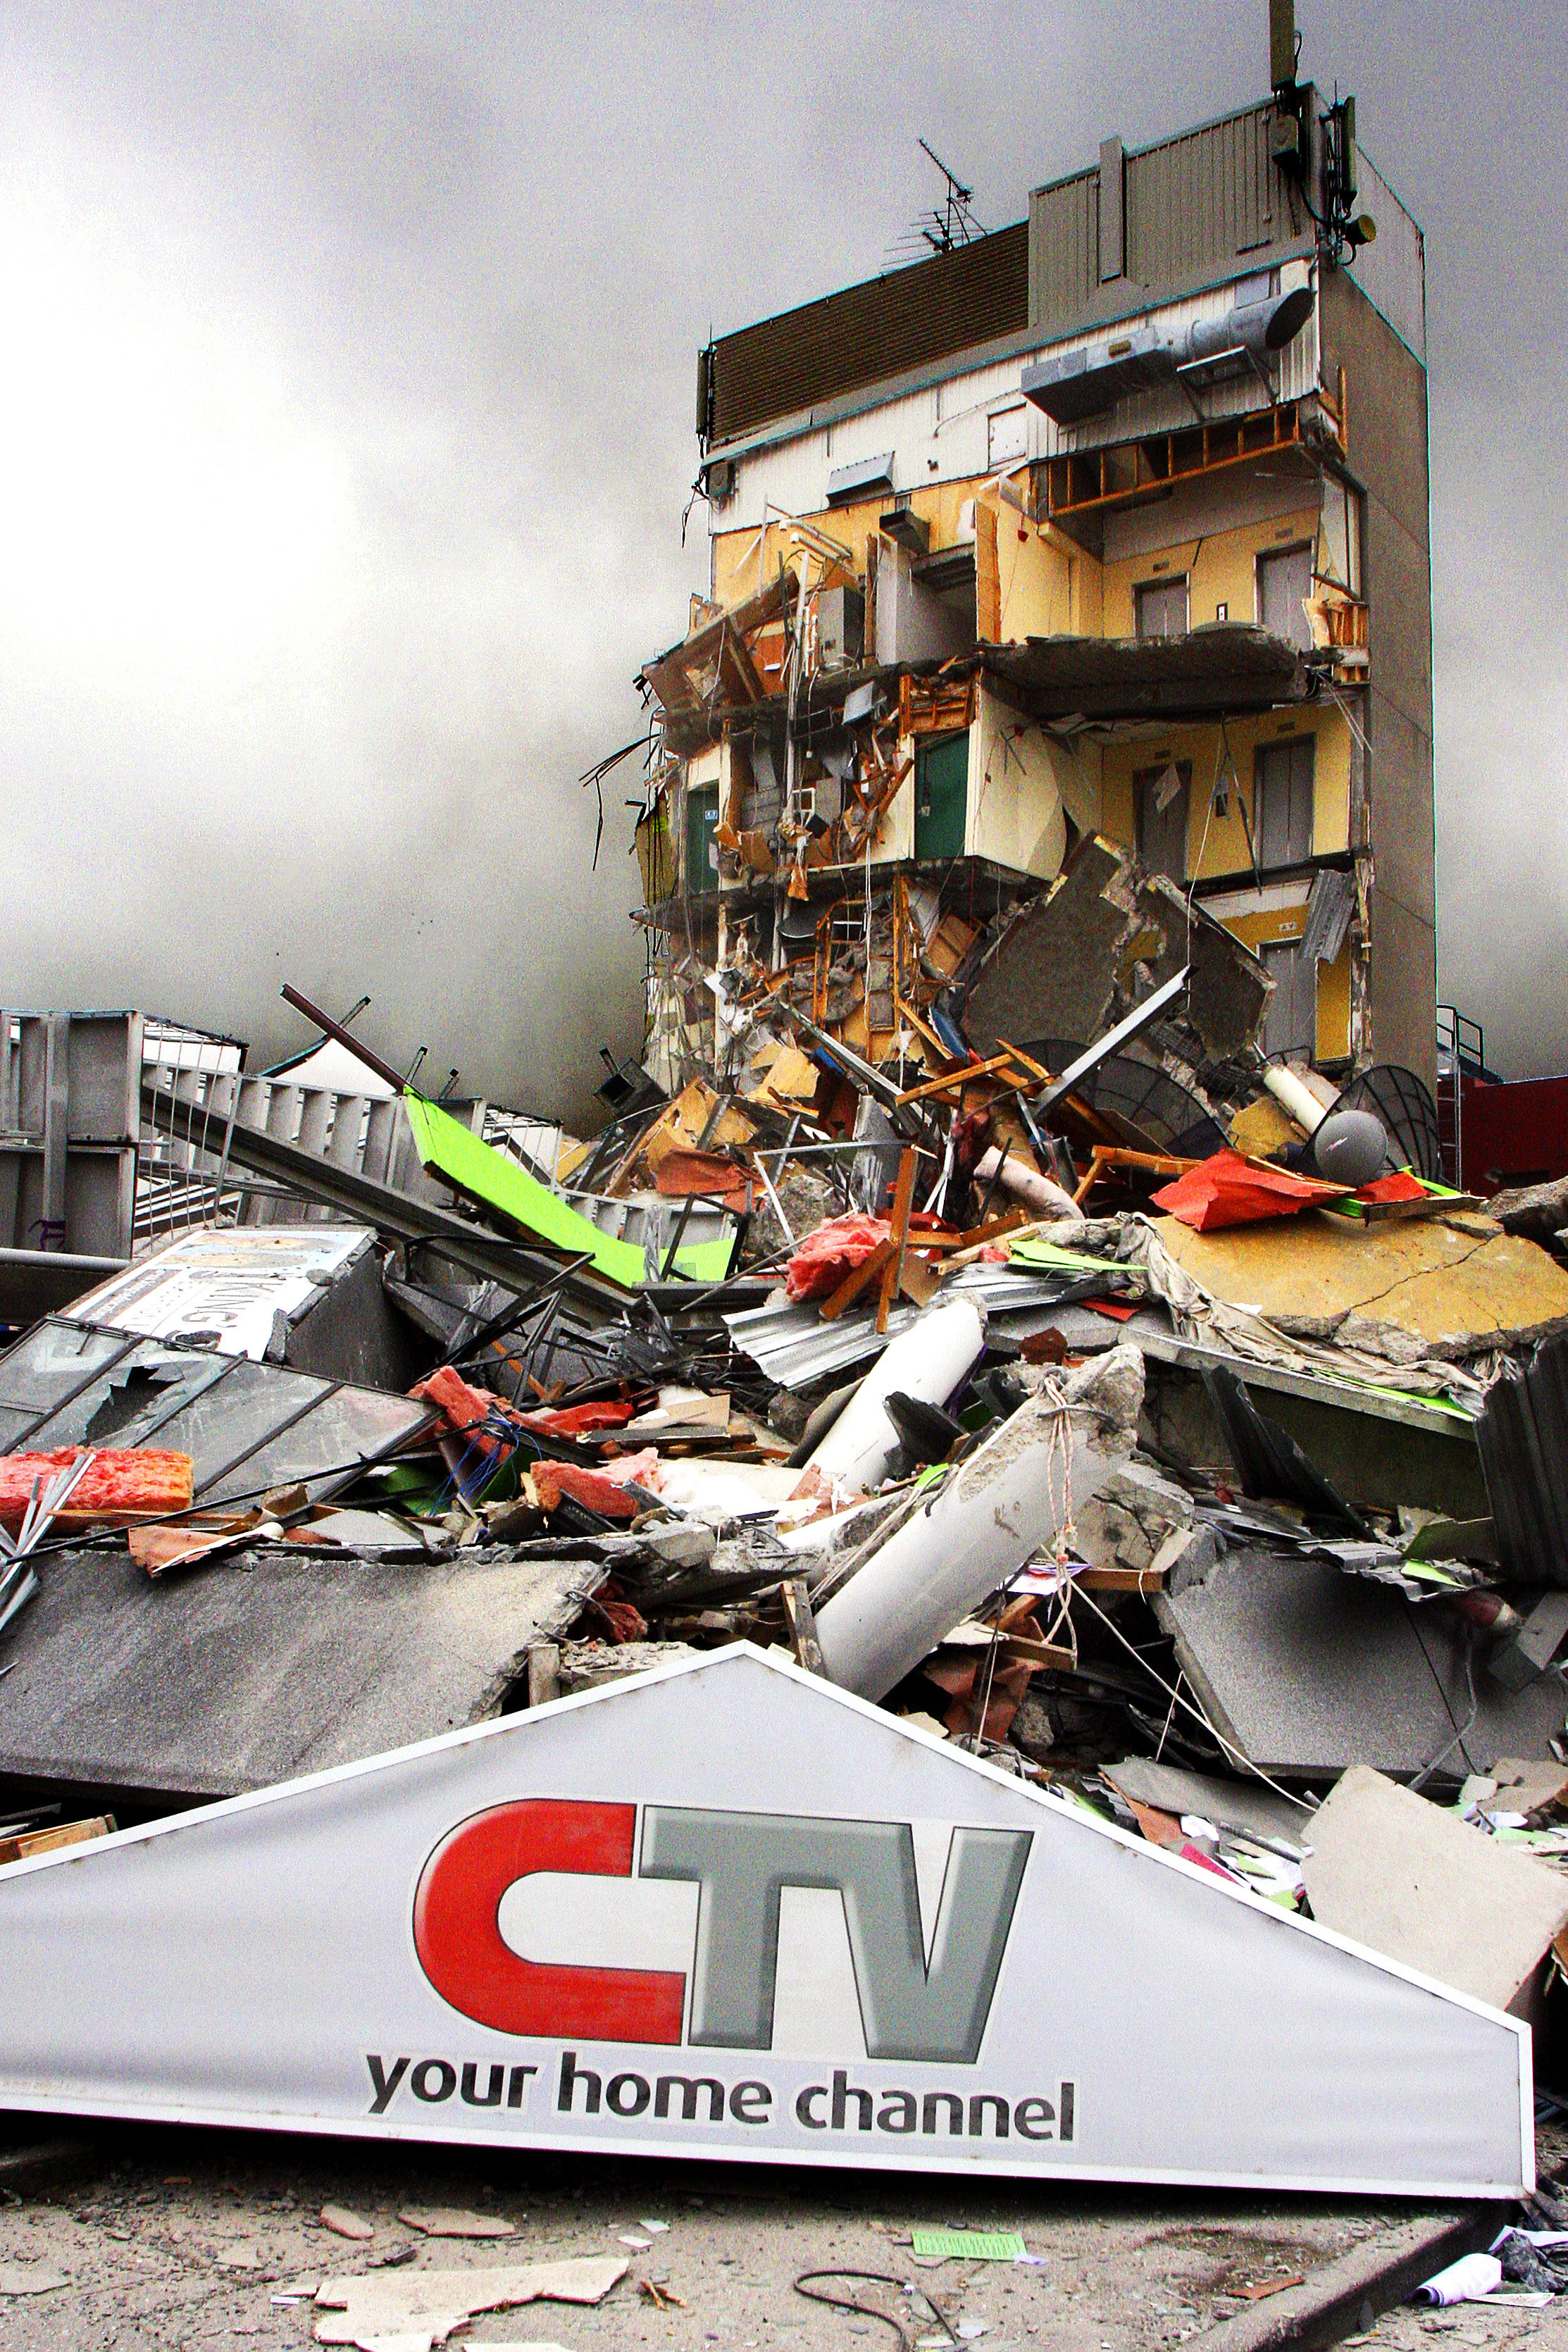 The CTV building has become a symbol of the February 2011 earthquake when it collapsed, killing...